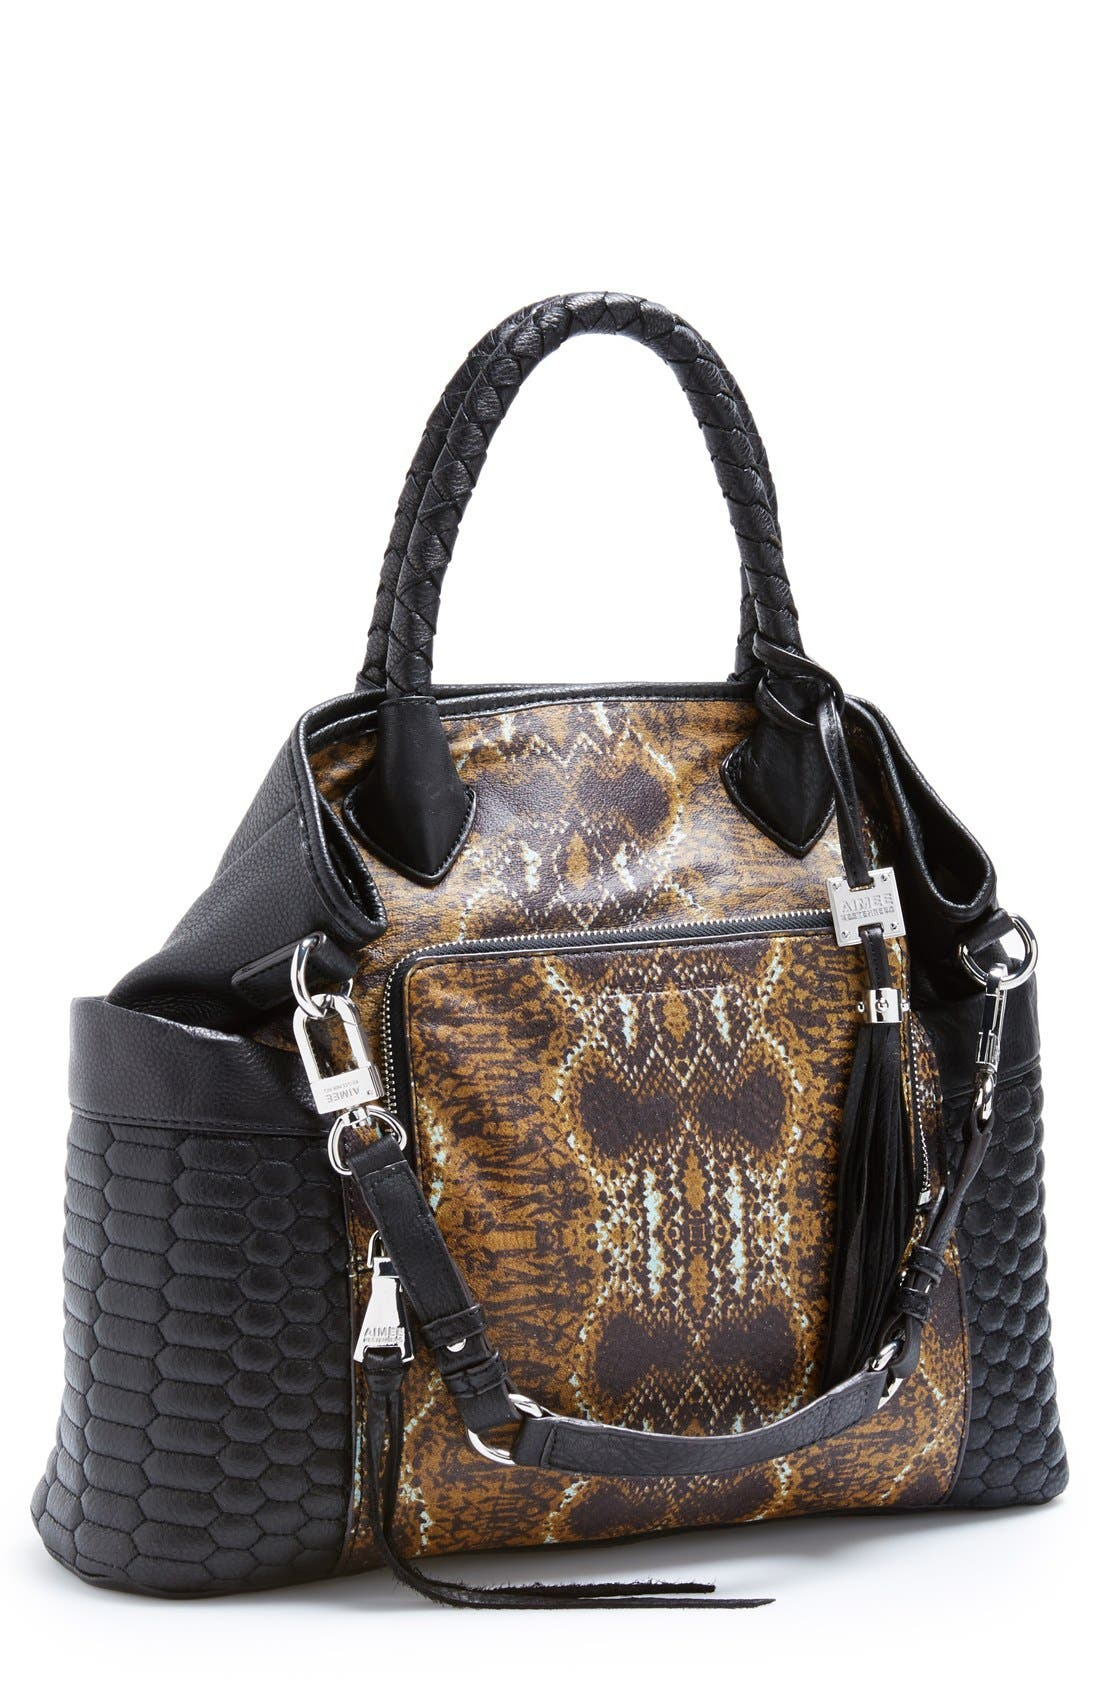 Alternate Image 1 Selected - Aimee Kestenberg 'Maria' Convertible Shoulder Tote